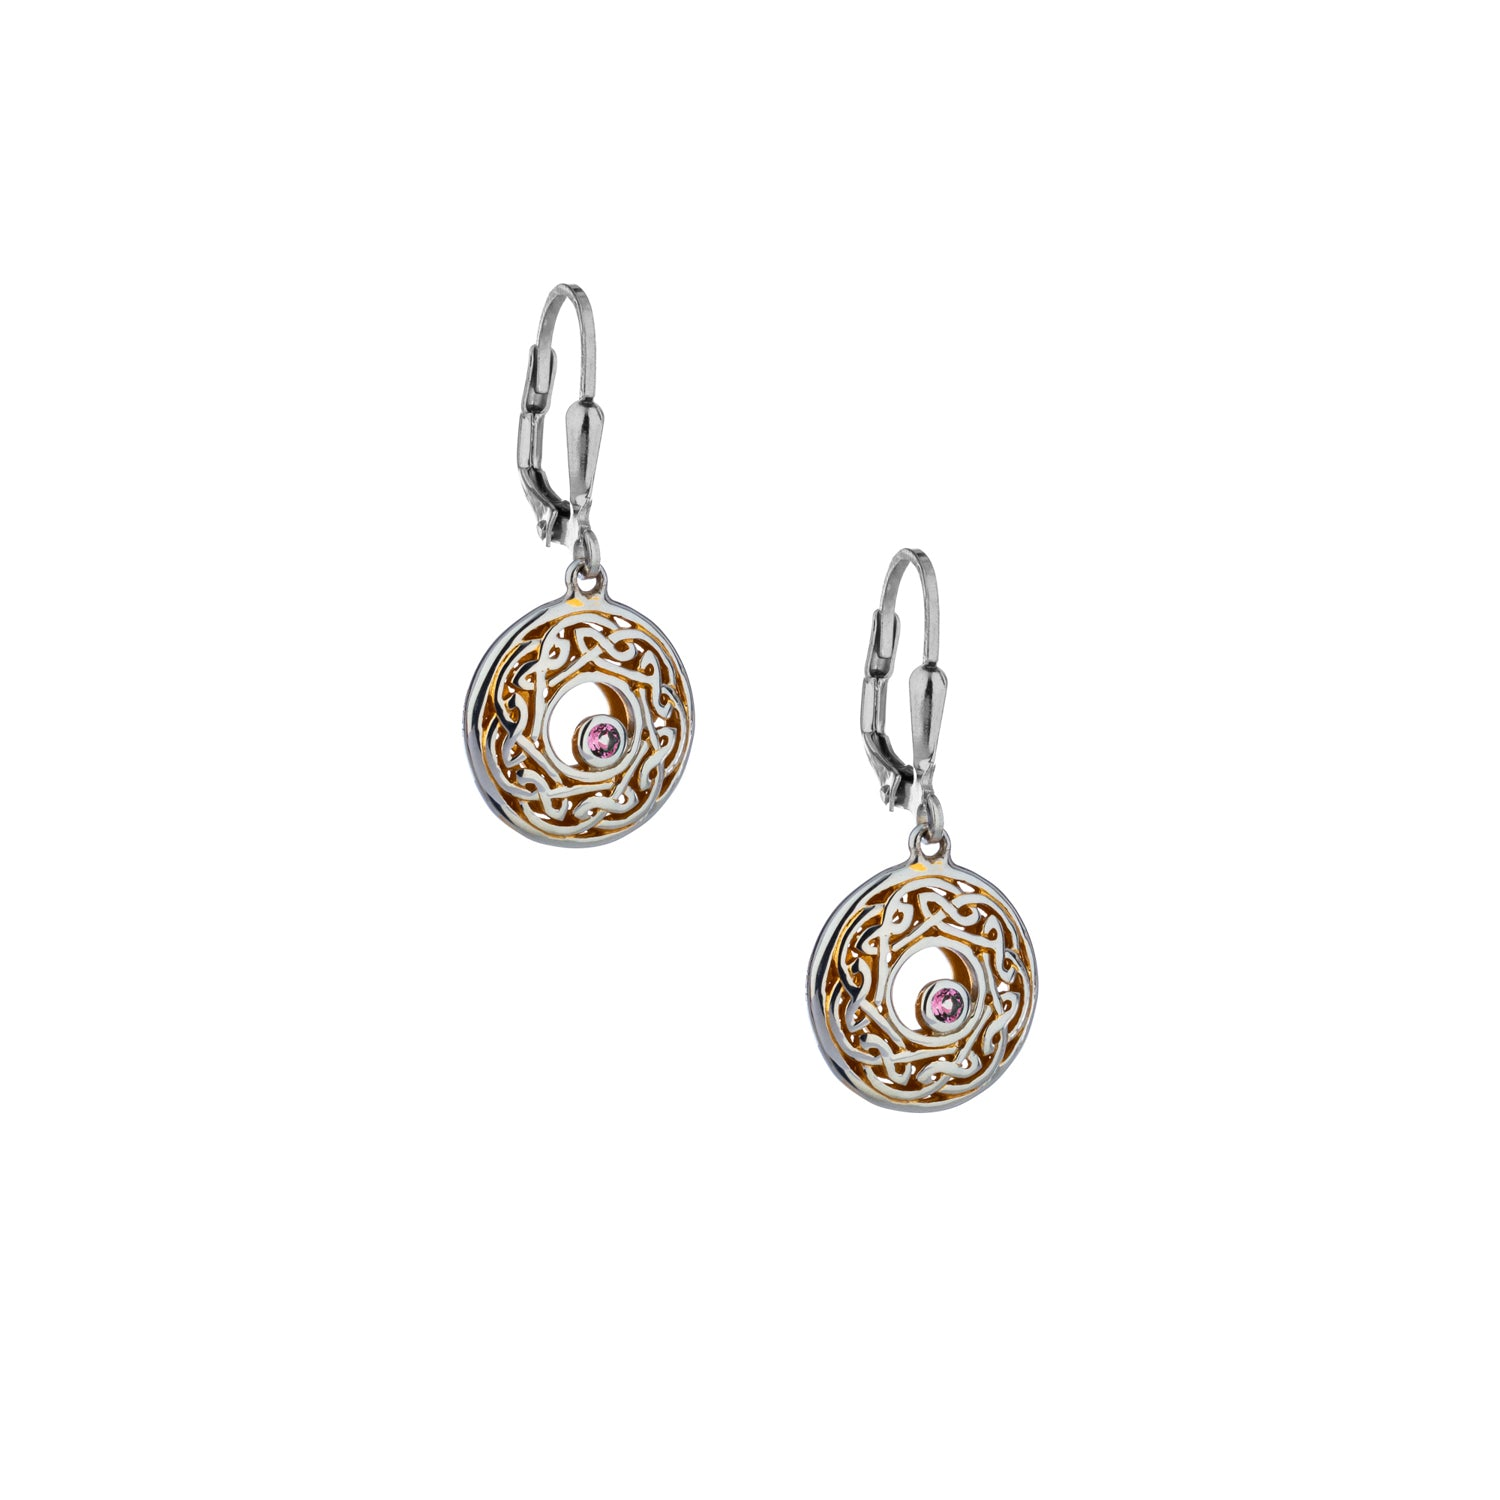 Earrings 22k Gilded Window to the Soul Rhodolite (2mm) Round Leverback Earrings from welch and company jewelers near syracuse ny